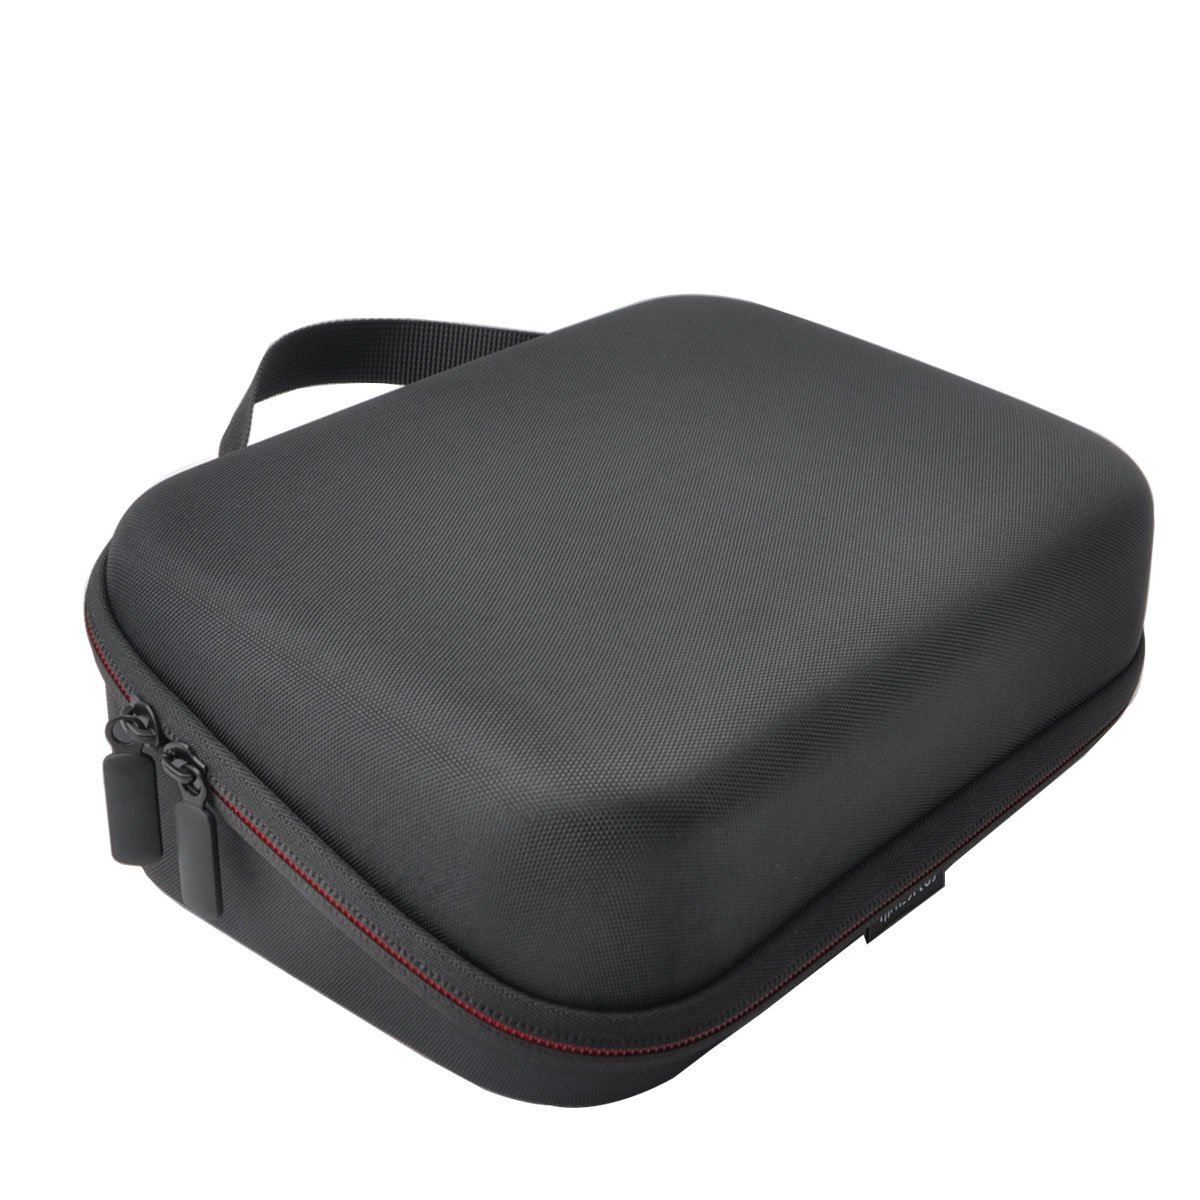 HESPLUS Carrying Case Travel Bag for Omron 10 Series Wireless Upper Arm Blood Pressure Monitor (BP786/BP786N/BP785N/BP791IT)